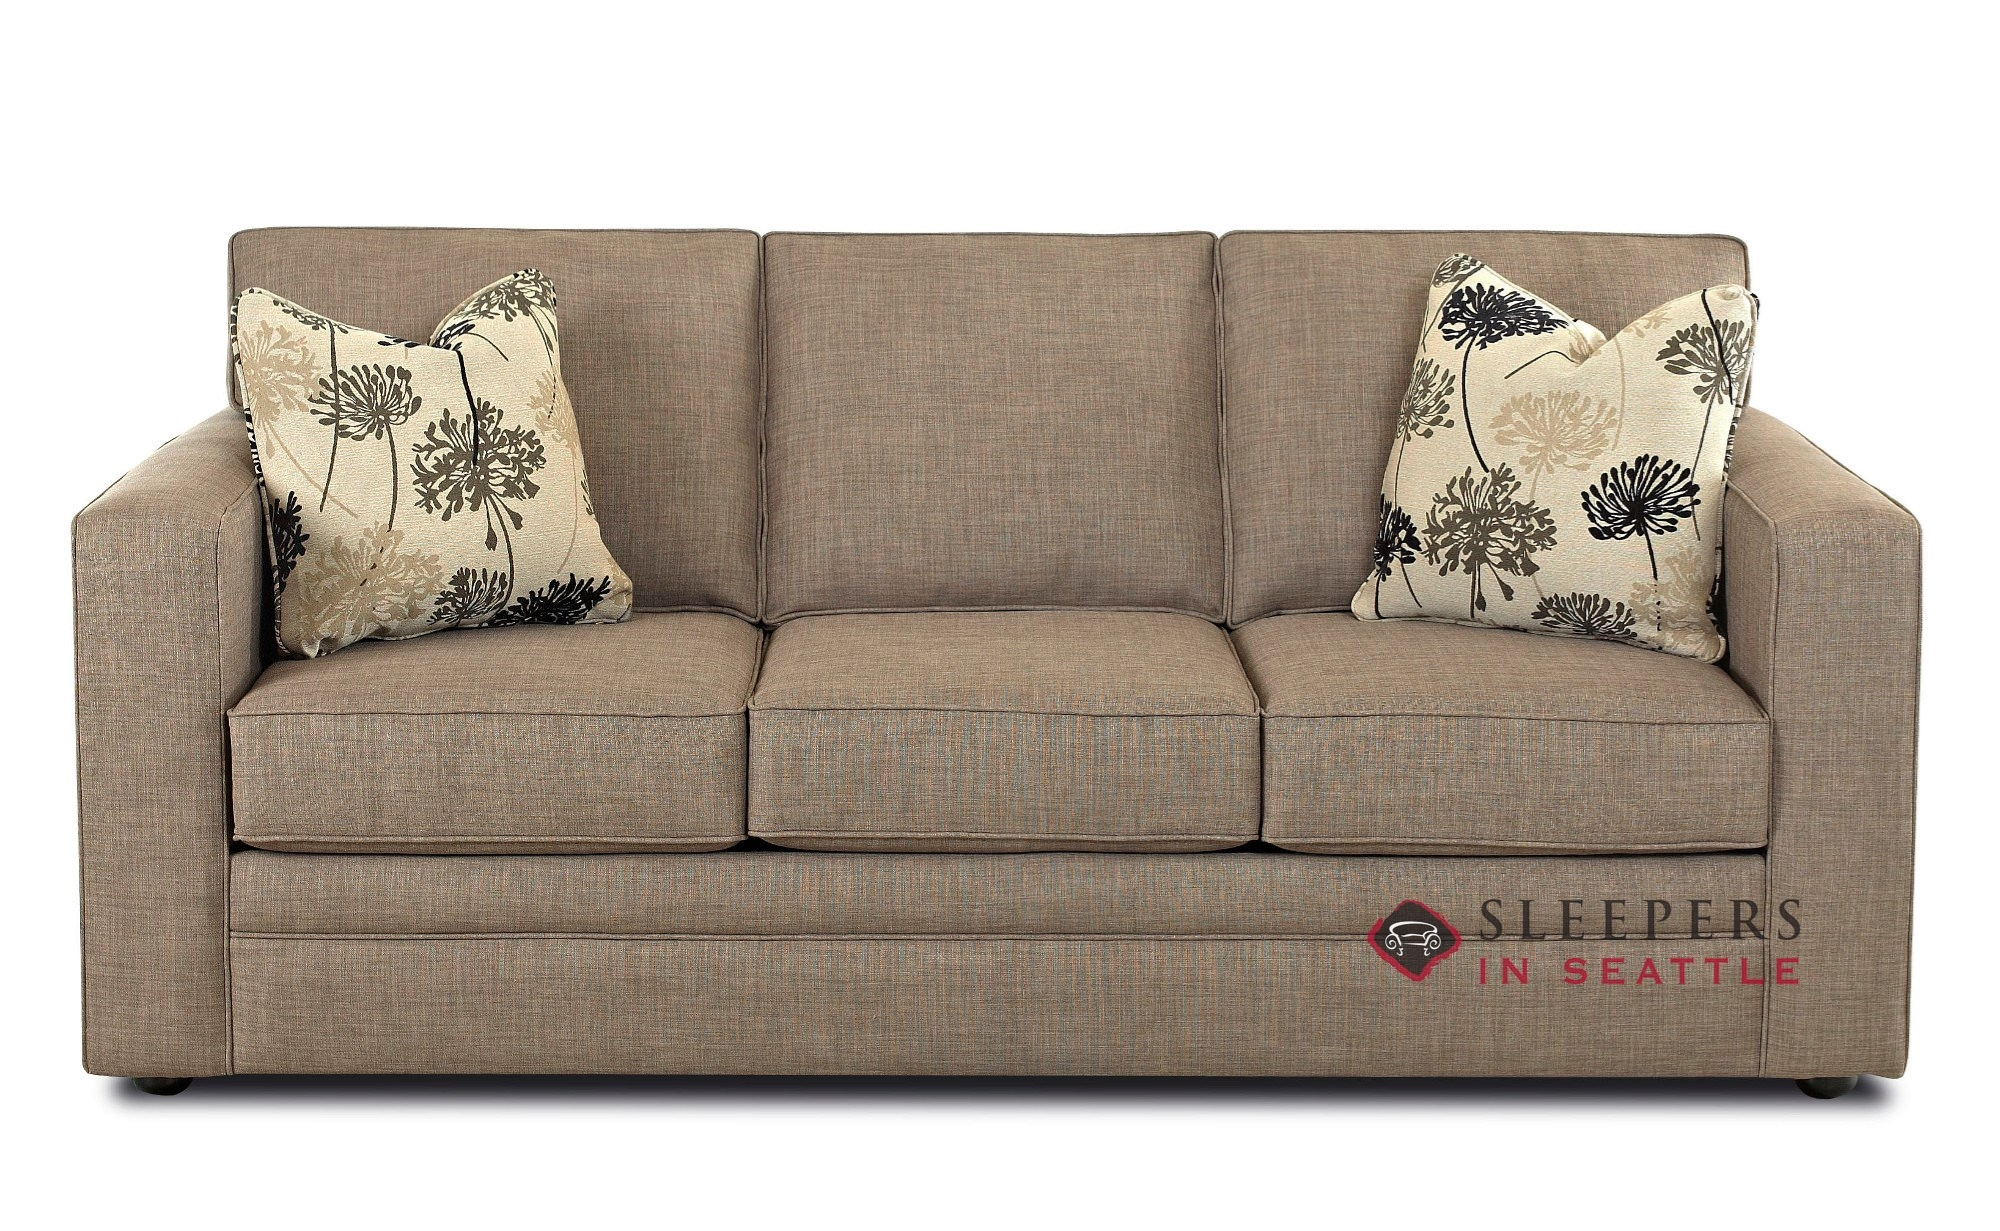 Sleeper Sofa Boston Bailey Queen Sleeper This Item May Be Custom Ordered In Over 600 Thesofa